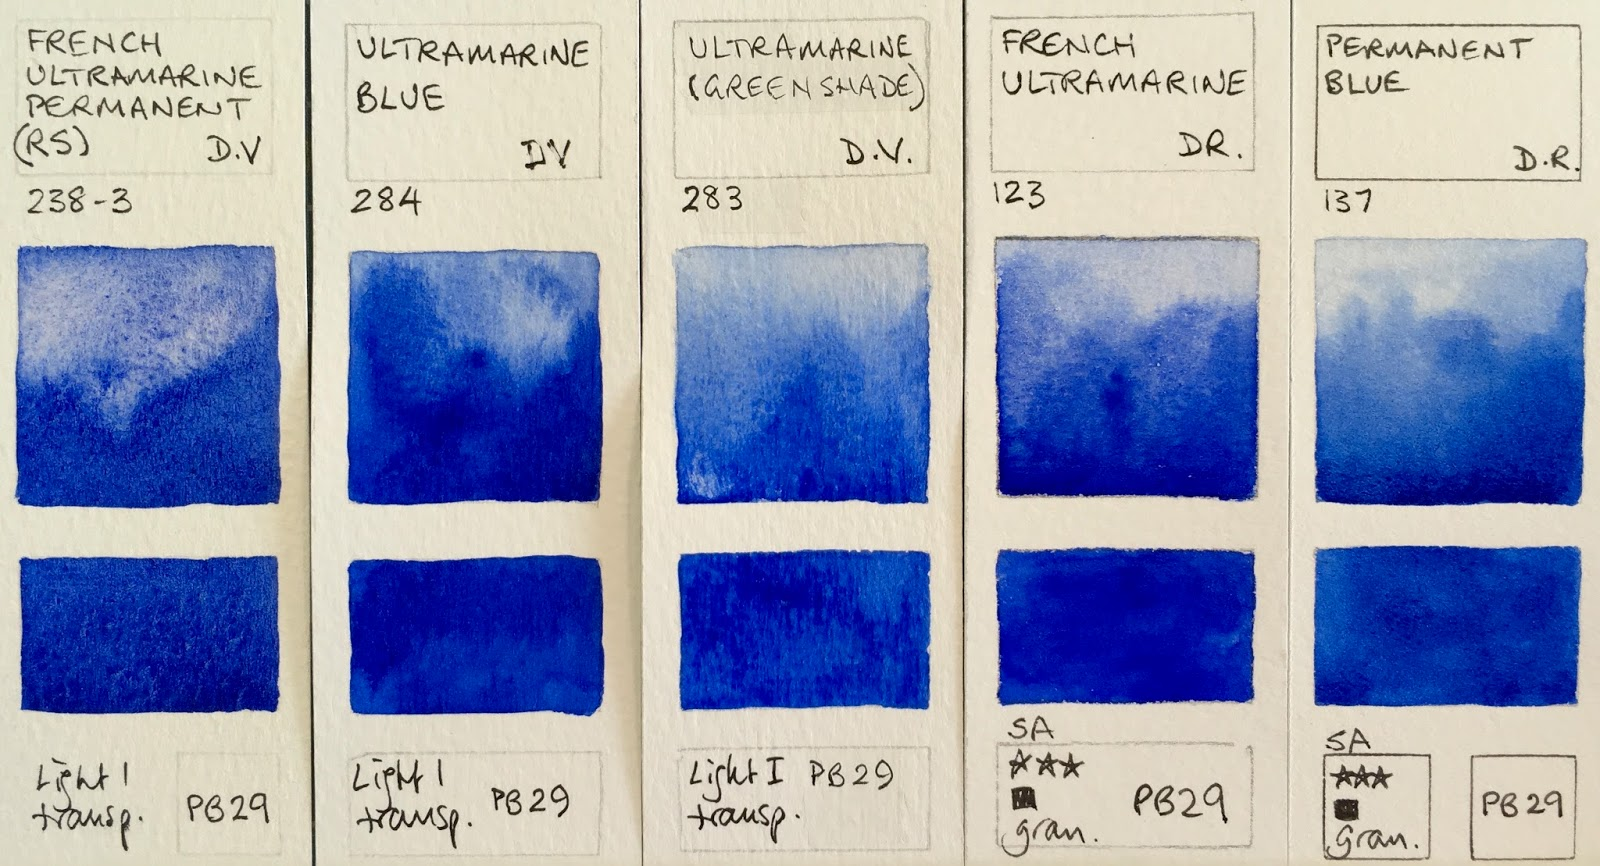 What is ultramarine Properties and use of the substance 19